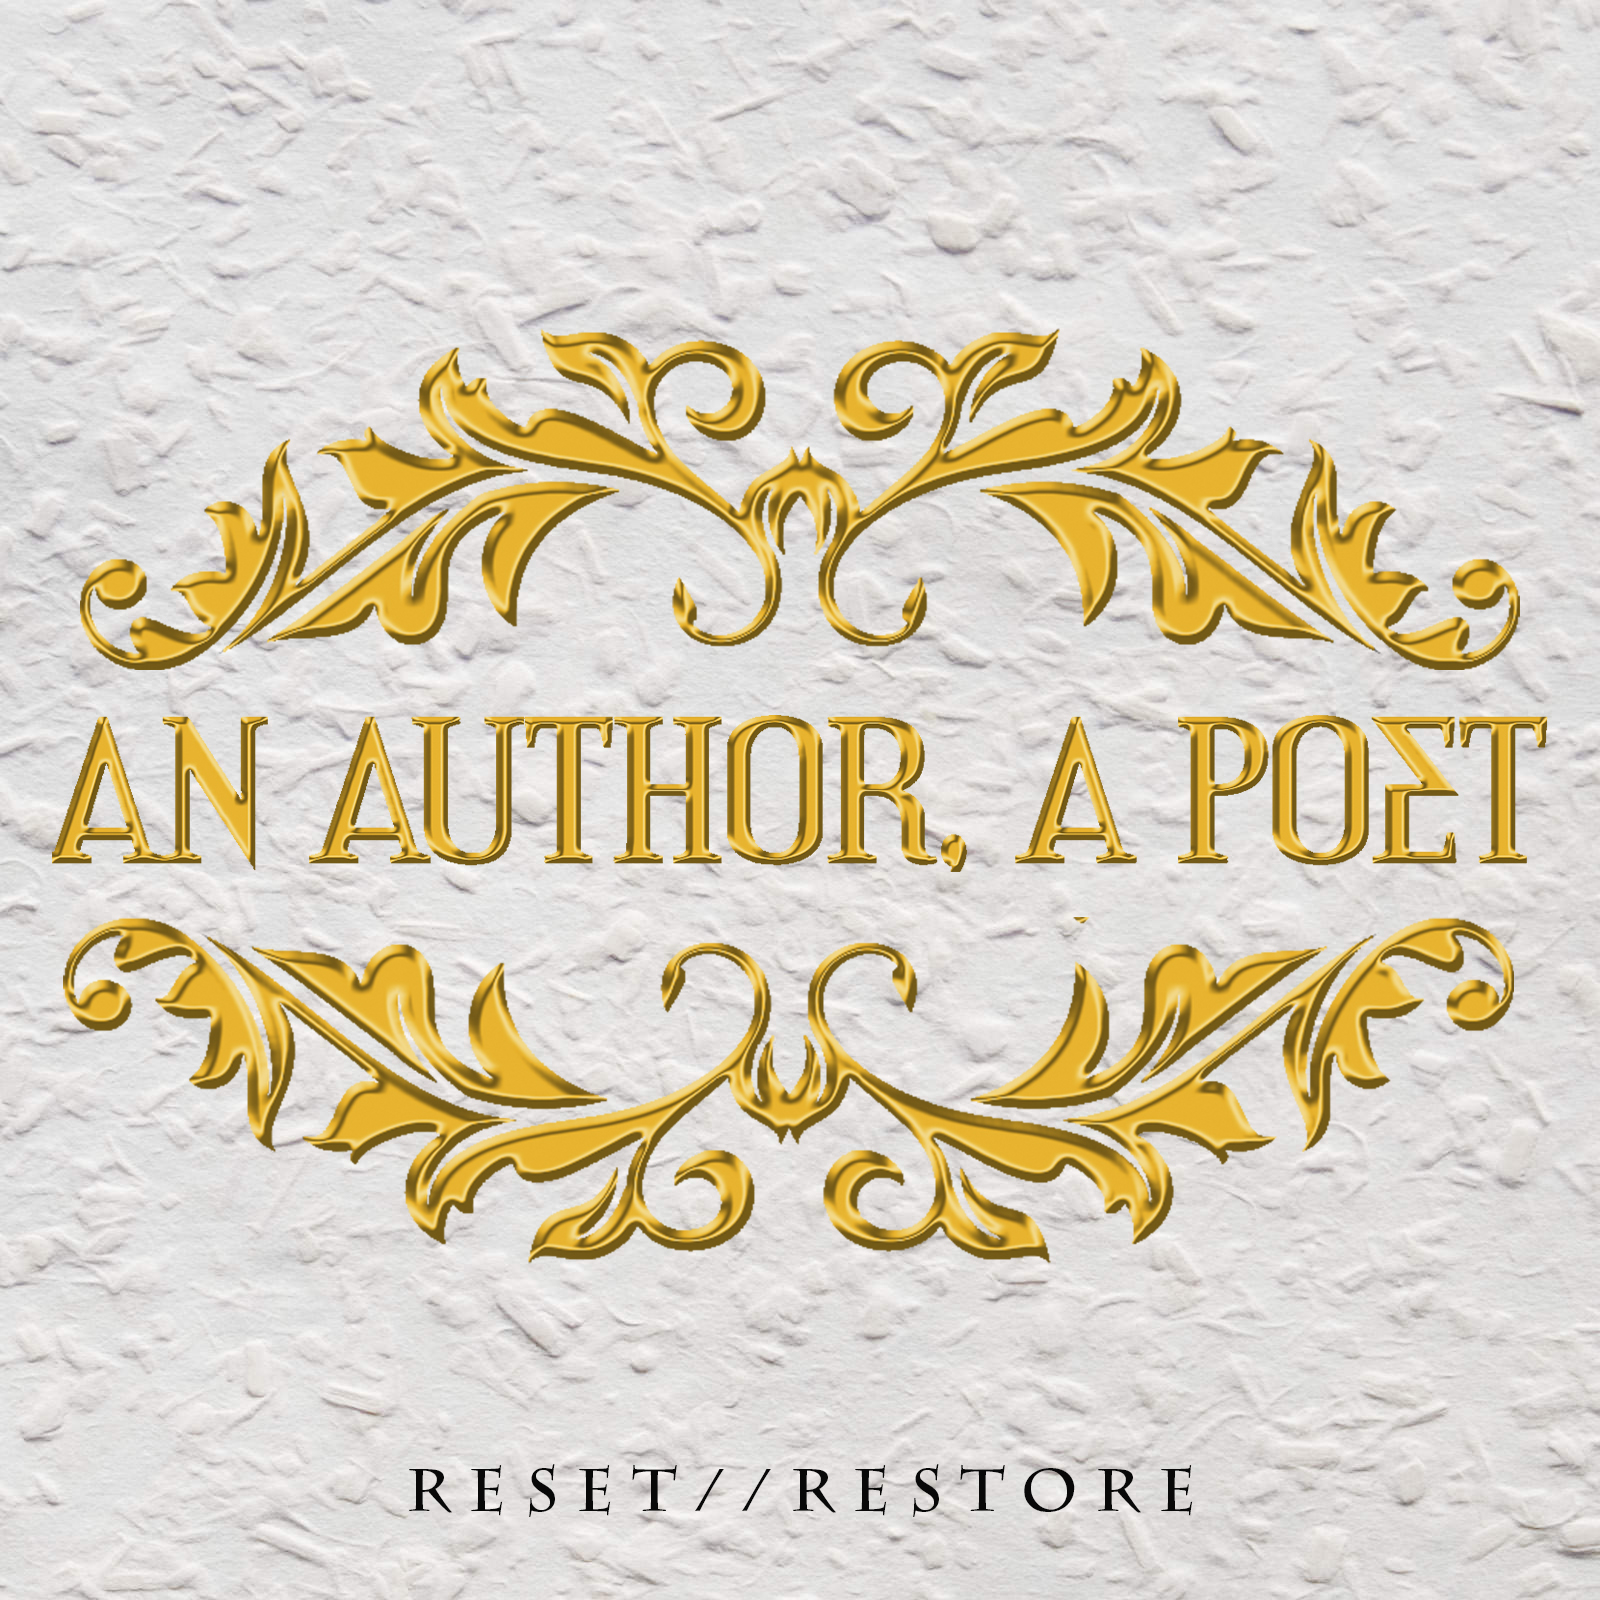 An Author, A Poet - 'RESET//RESTORE'